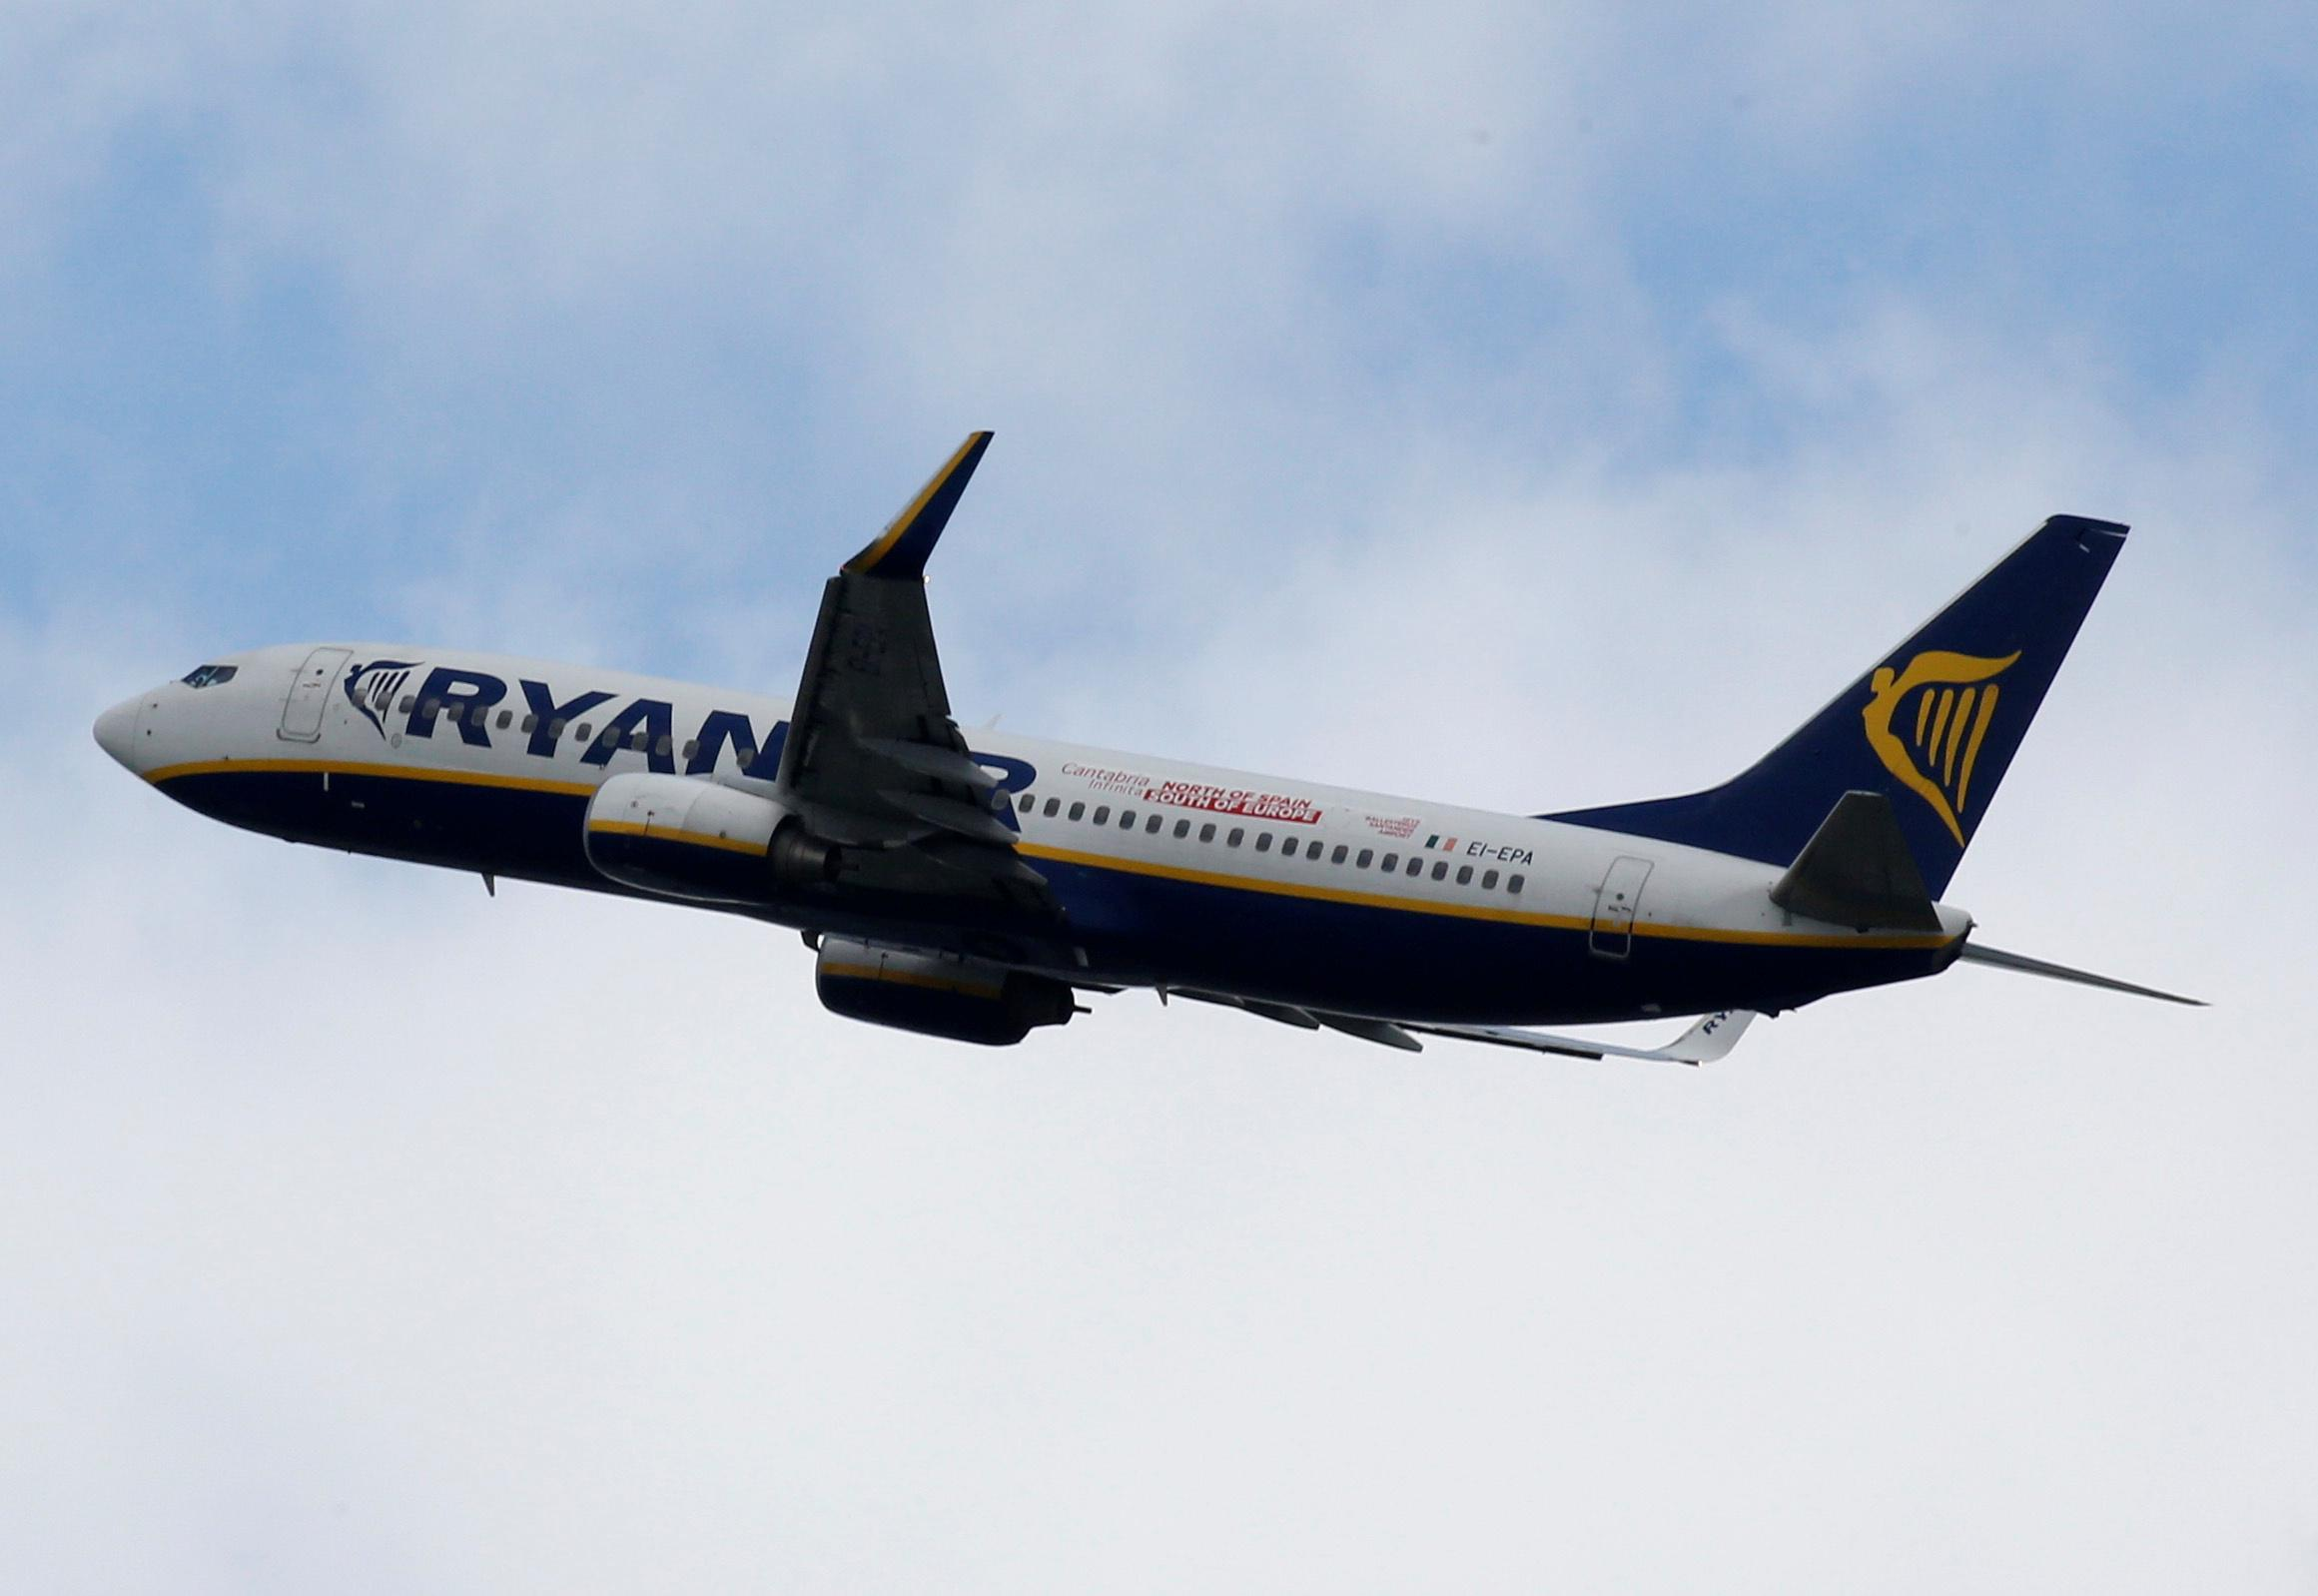 Spanish court says Ryanair's hand luggage fee is 'abusive'